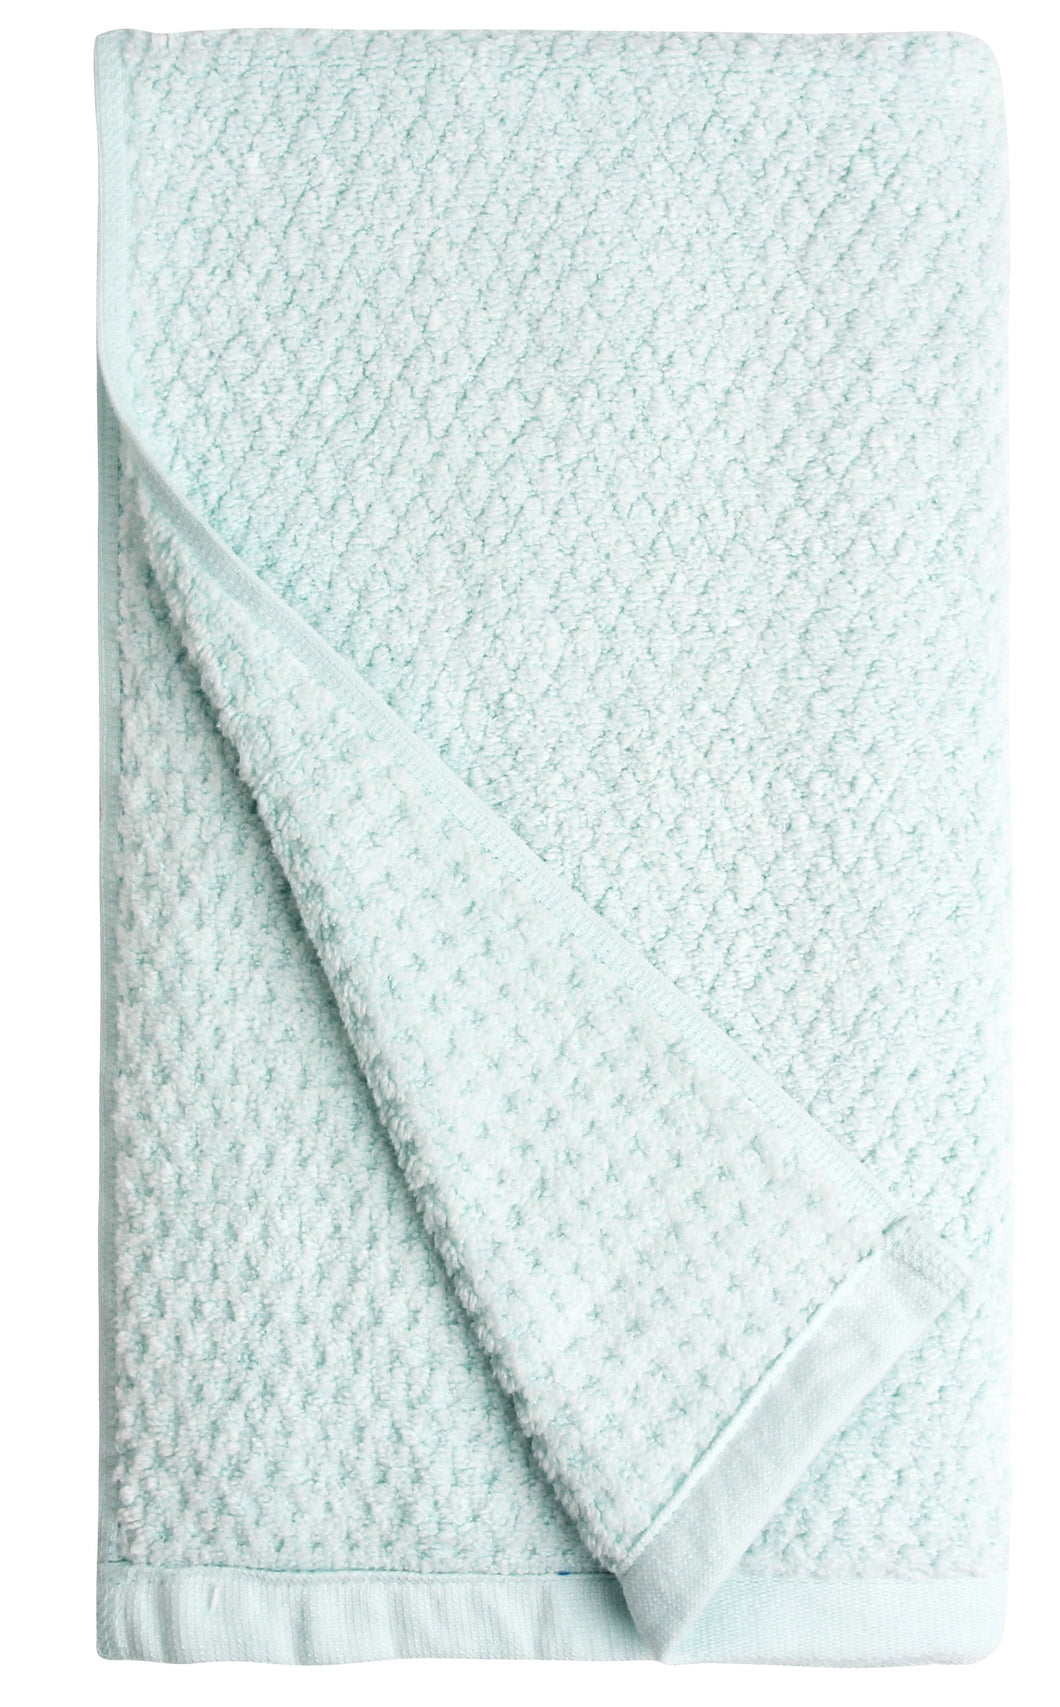 Diamond Jacquard Hand Towels - 4 Pack, Spearmint